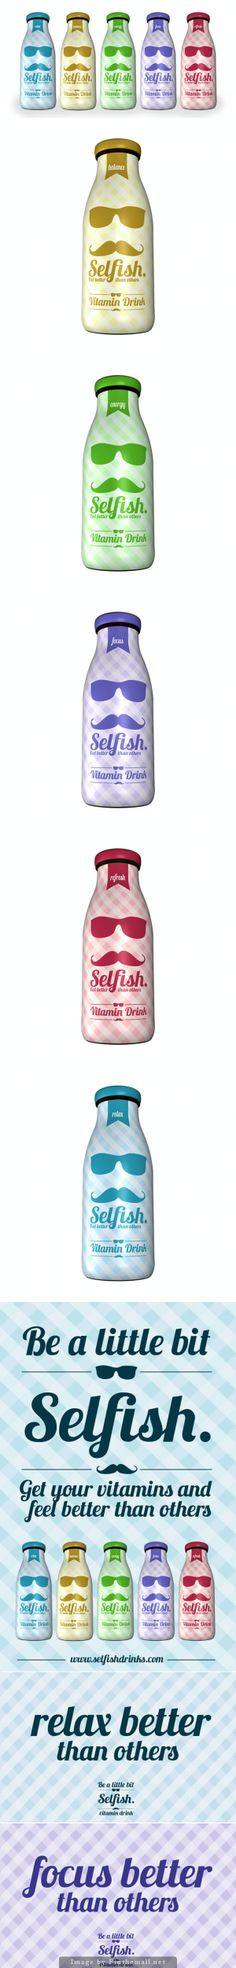 Let's be a little bit selfish #packaging : ) PD - created via http://www.moontroops.com/concept-design-selfish-vitamin-derinks/